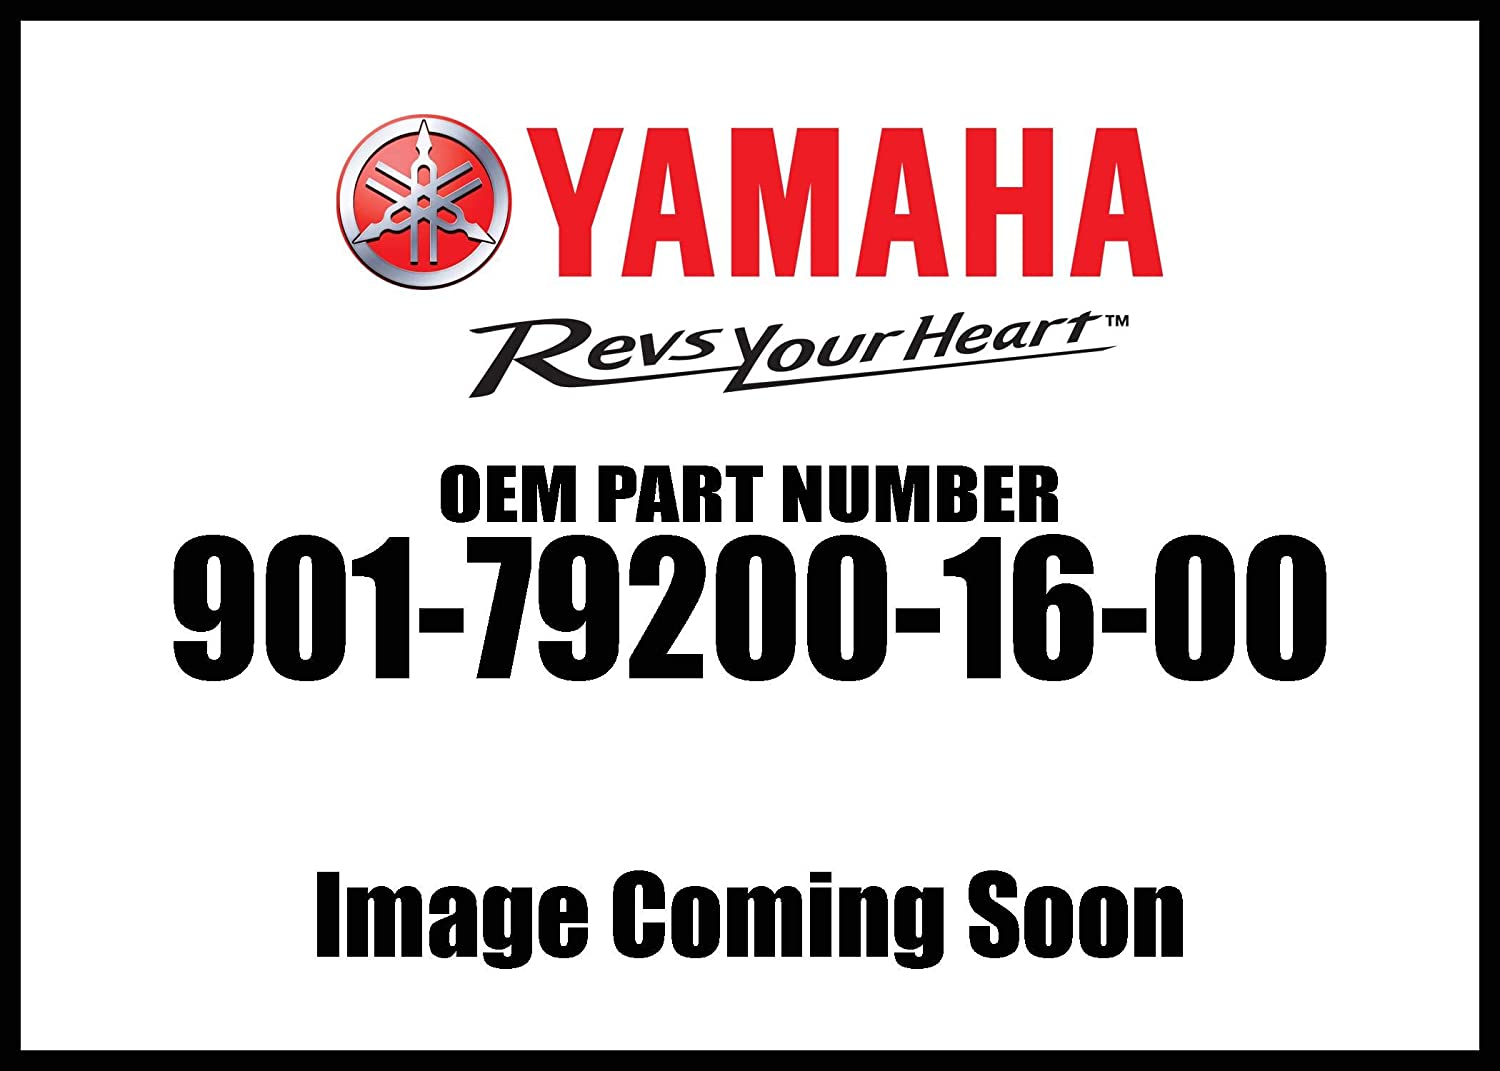 Yamaha 90179-20016-00 Nut; 901792001600 Made by Yamaha